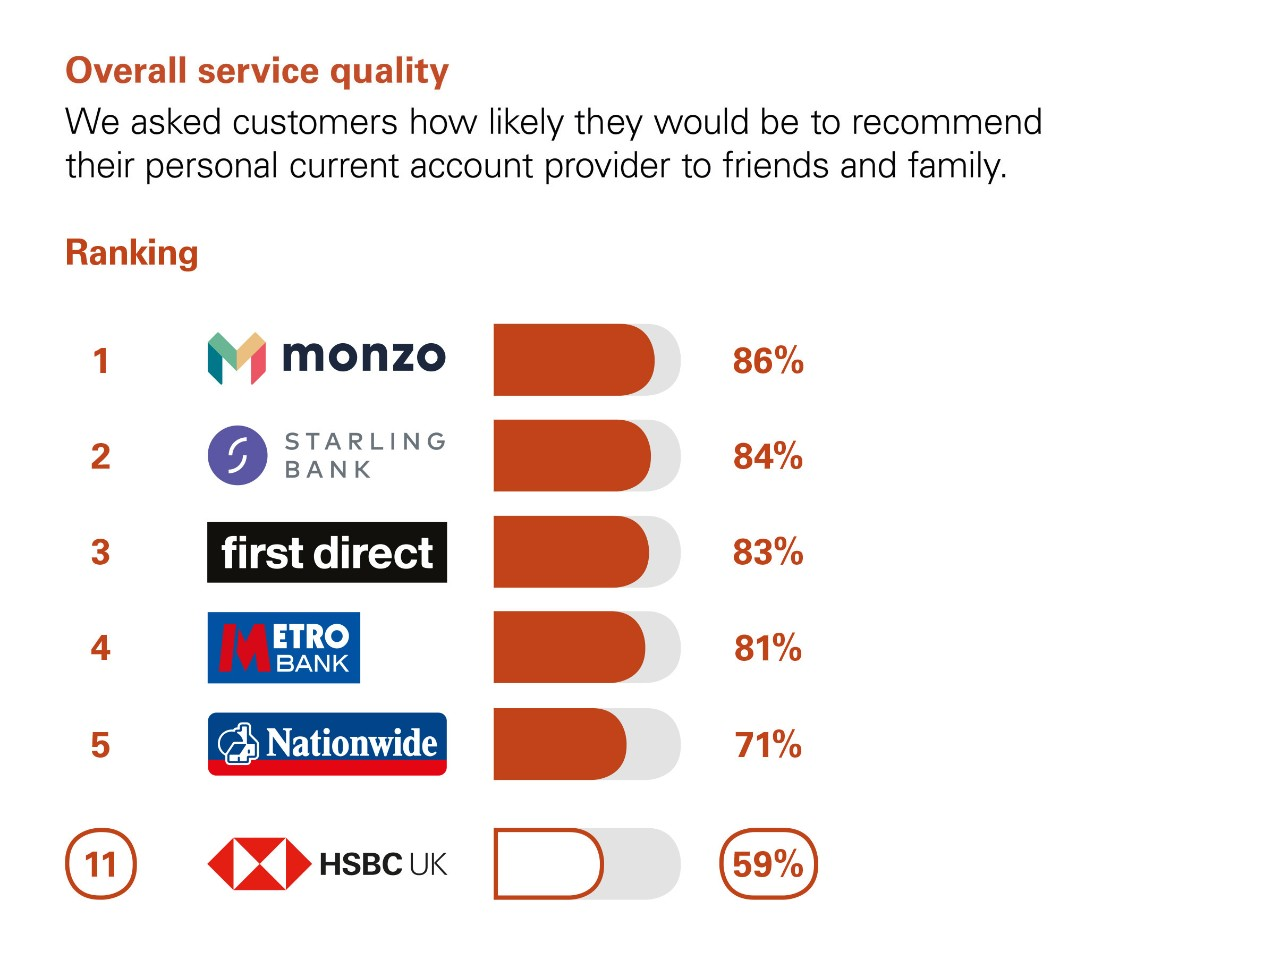 Overall Service Quality. We asked customers how likely they would be to recommend their personal current account  provider to friends and family. Ranking:  1 Monzo 86%. 2 Starling Bank  84%. 3 first direct 83%. 4 Metro bank 81%. 5 Nationwide 71%. 11 HSBC UK 59%.